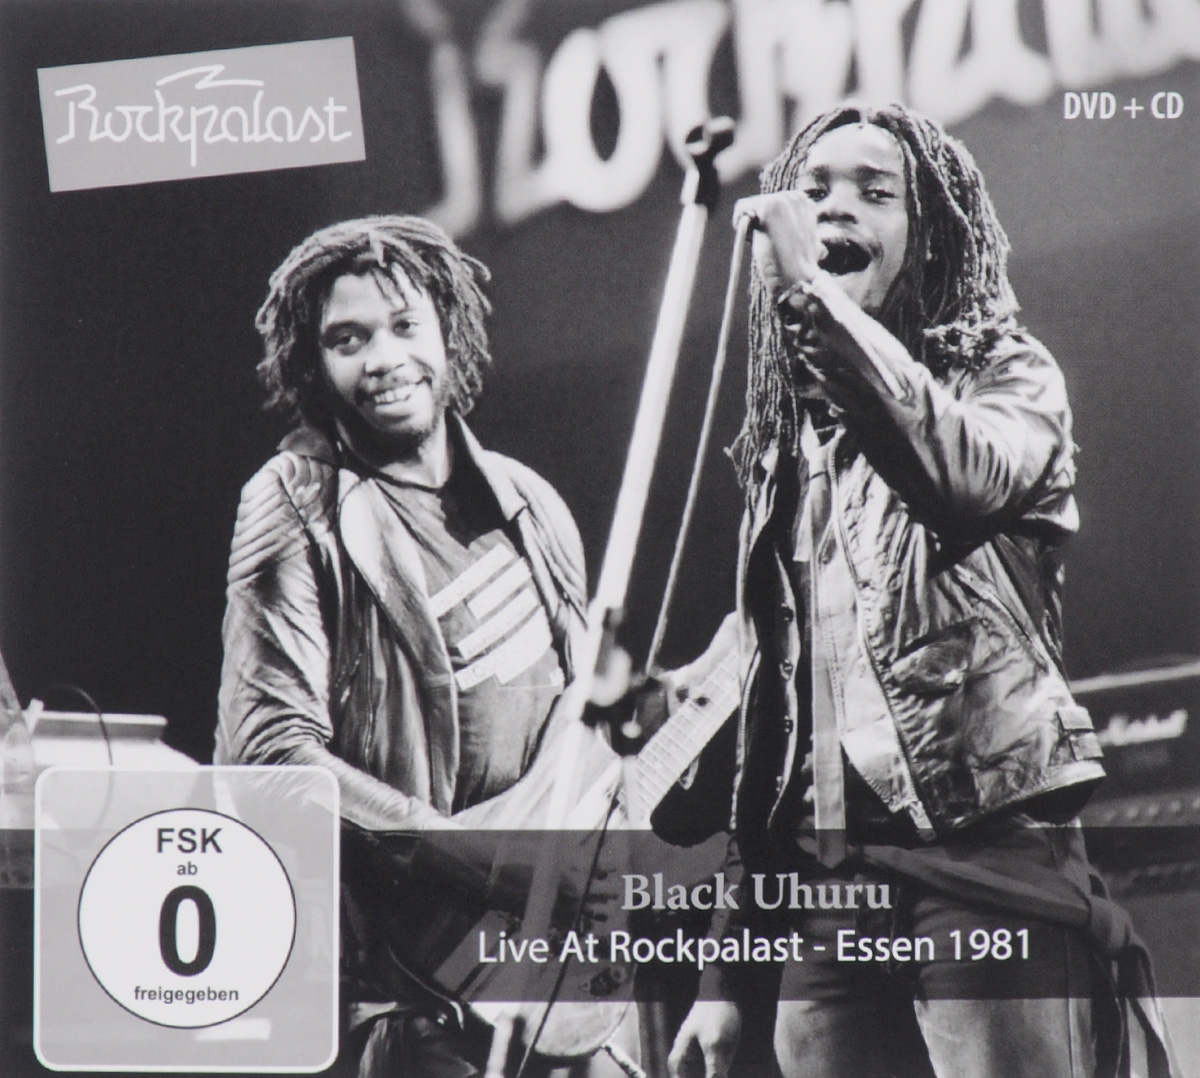 Black Uhuru Black Uhuru. Live At Rockpalast. Essen 1981 (CD + DVD)